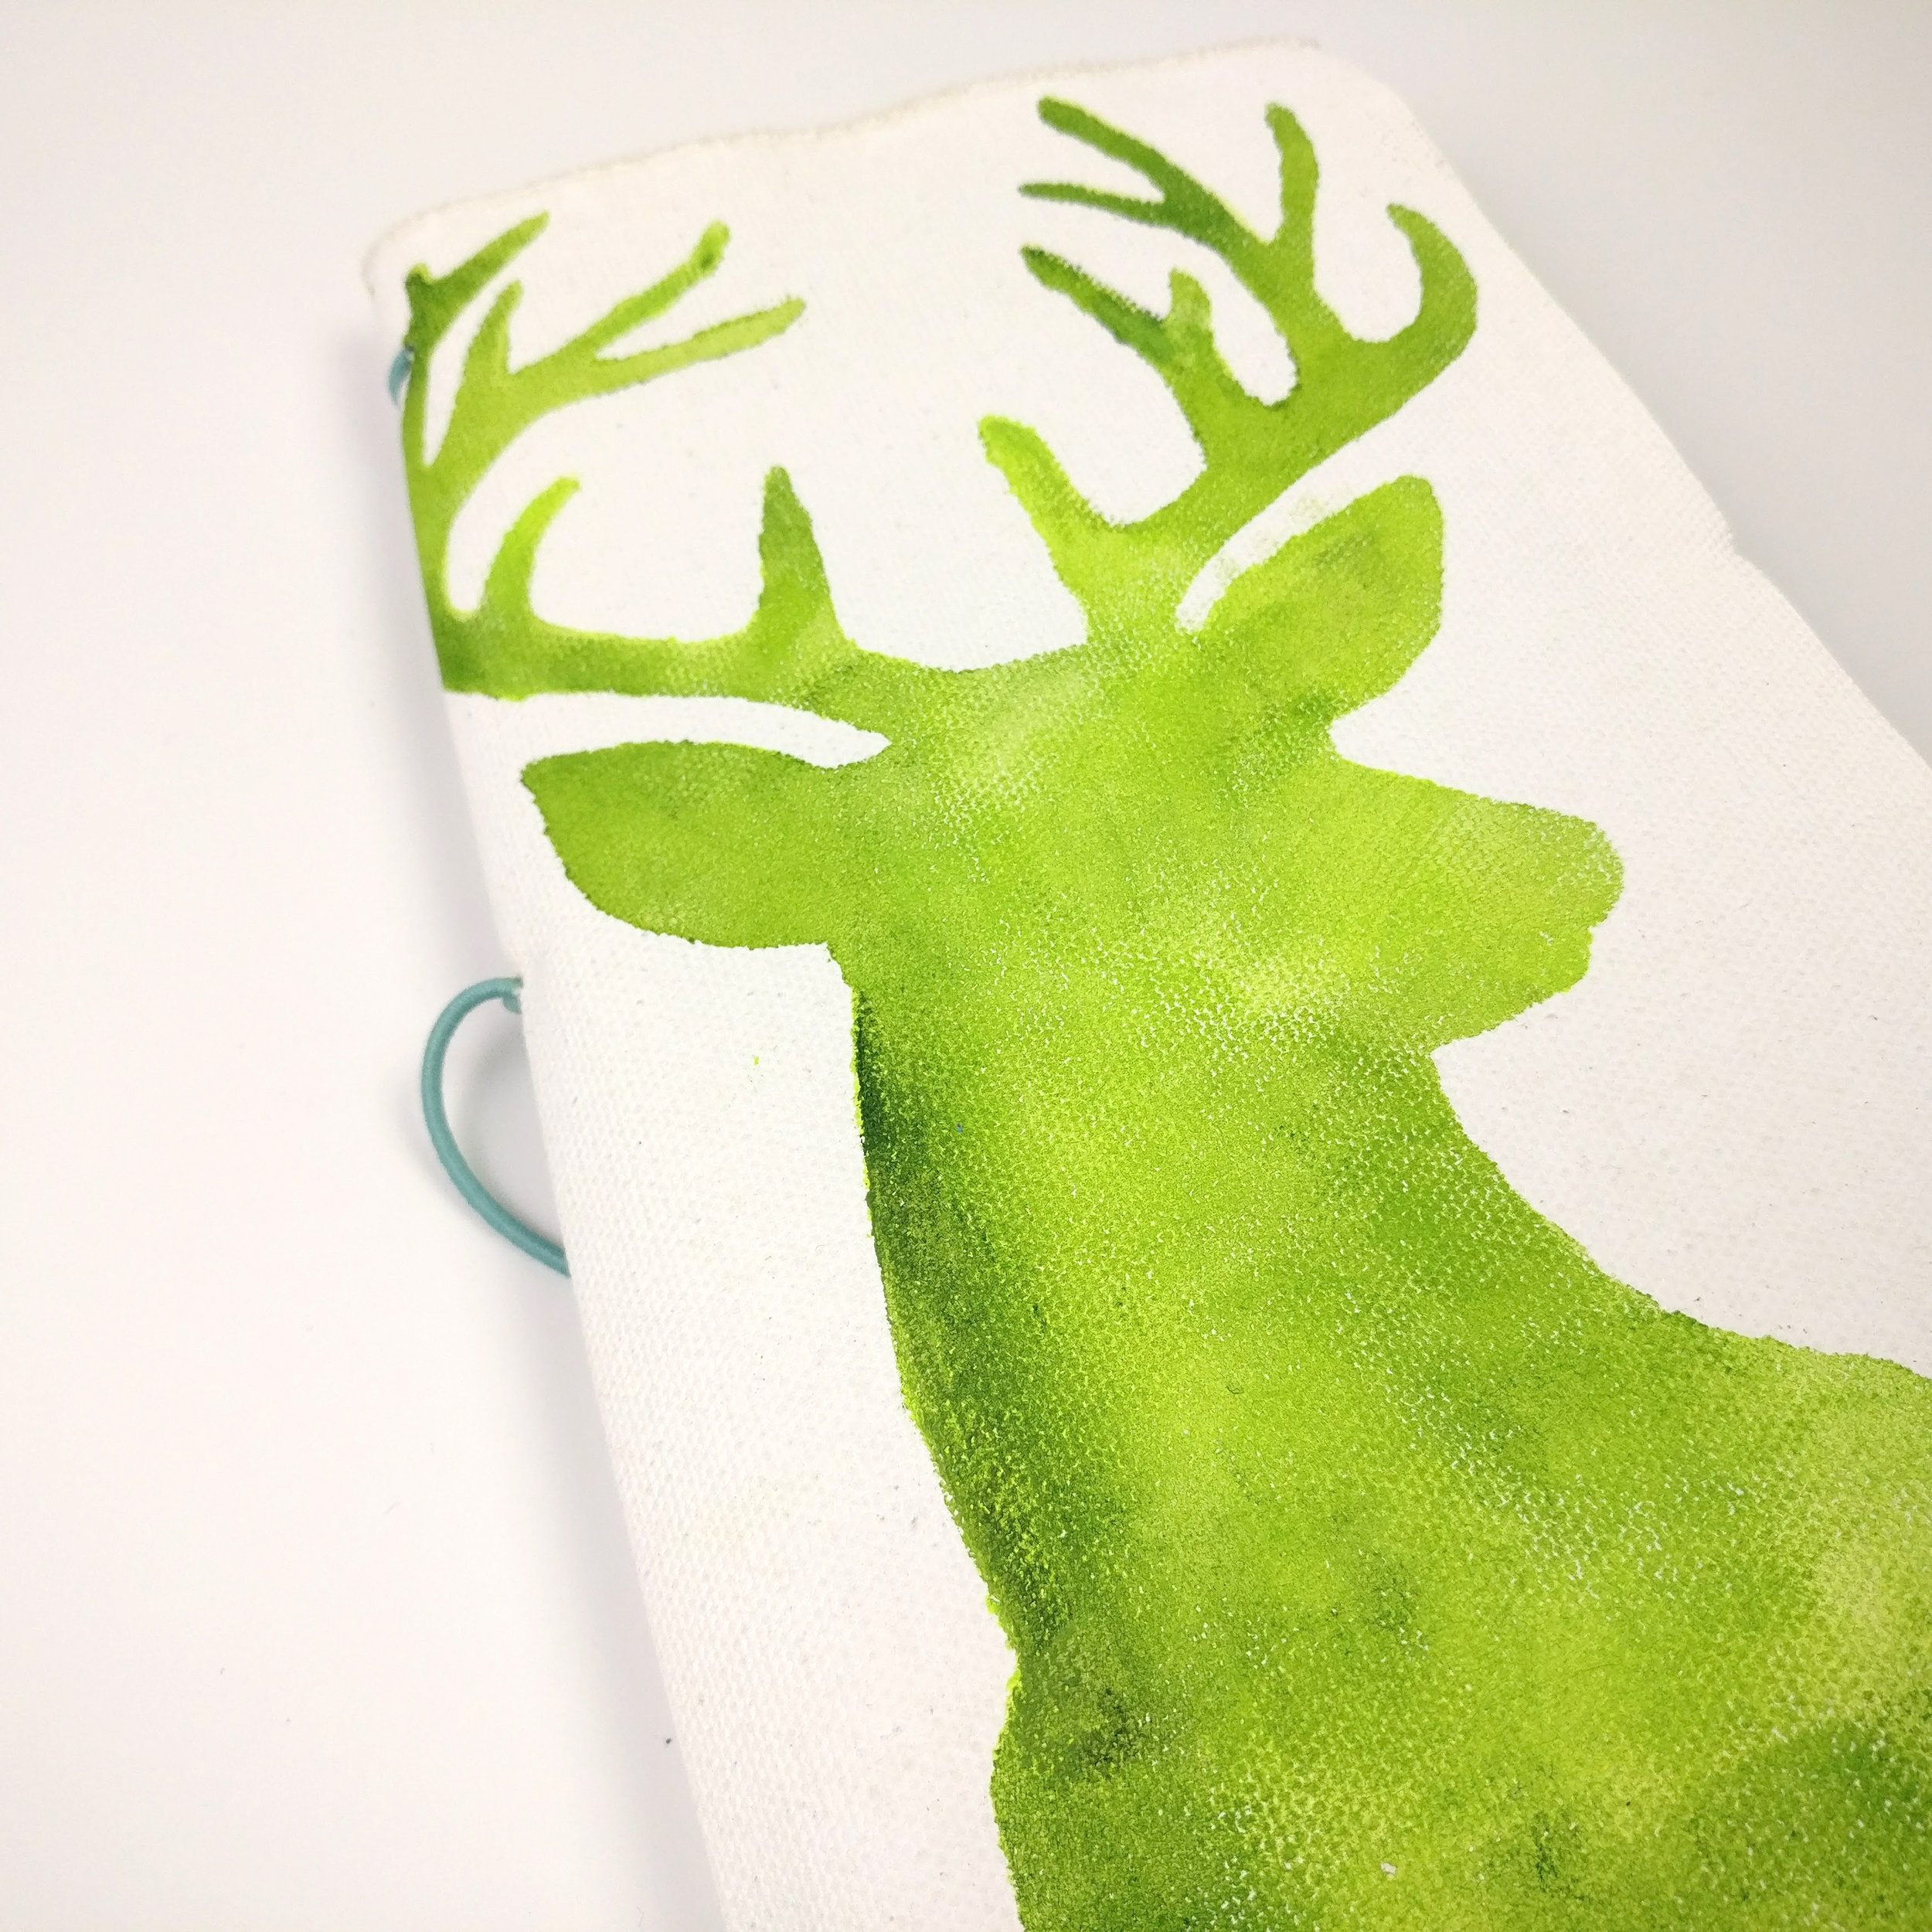 Make Your Own Custom Travellers Notebook Cover I'm sharing how I have made my custom cover for my Travellers Notebook Size Junk Journal for my December Daily for 2017. I am determined to complete December Daily this year! I'm working with Judit Pfaff Daley's new Deer with Antlers Stencil to create a a green watercolor effect on my canvas cover.